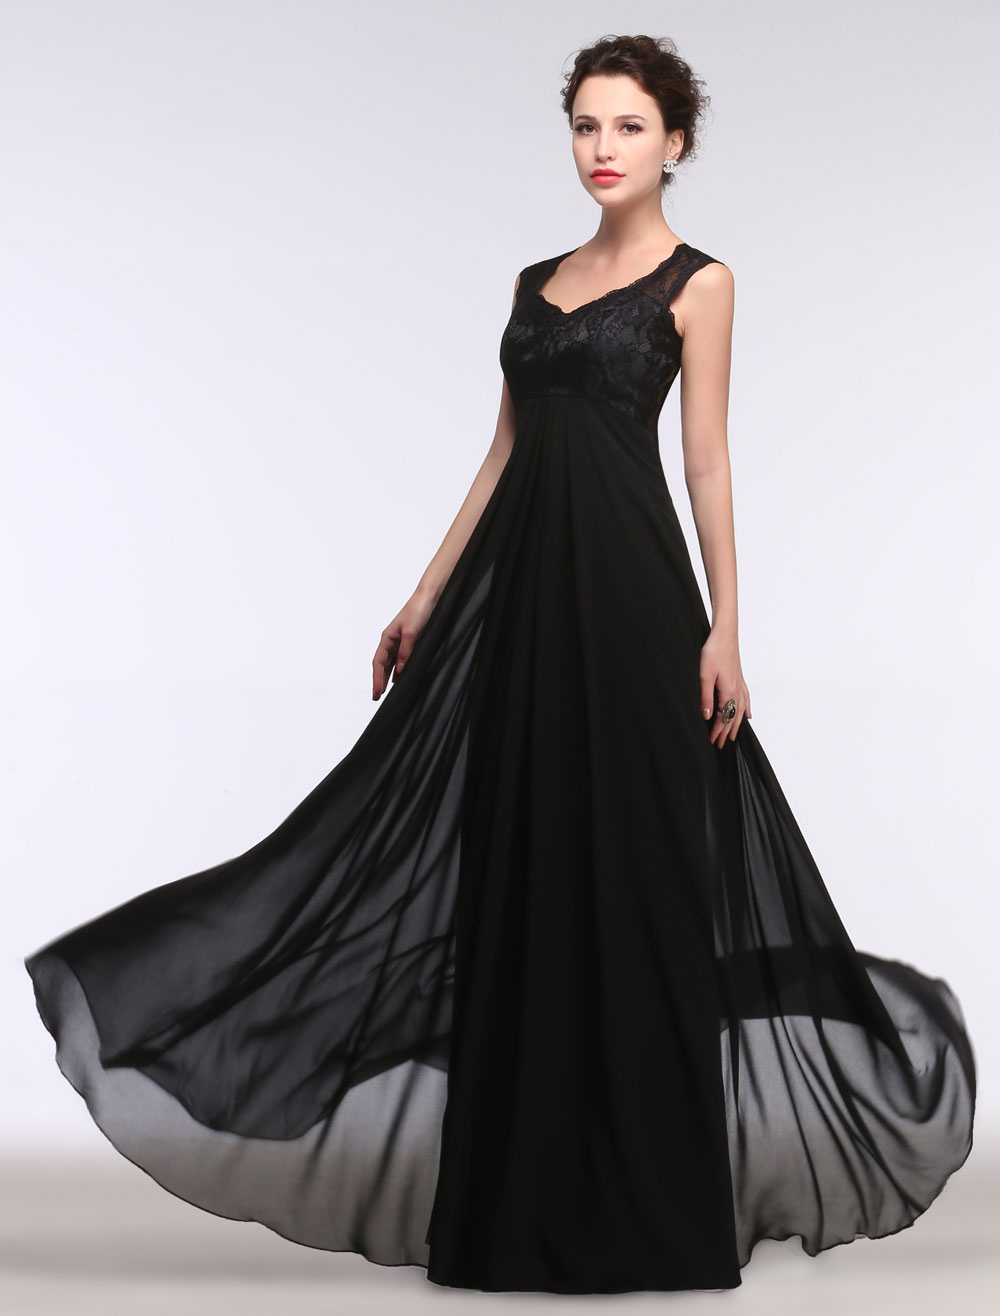 Black Evening Dress Lace Sweatheart Maxi Party Dress A Line Sleeveless Floor Length Mother's Dress